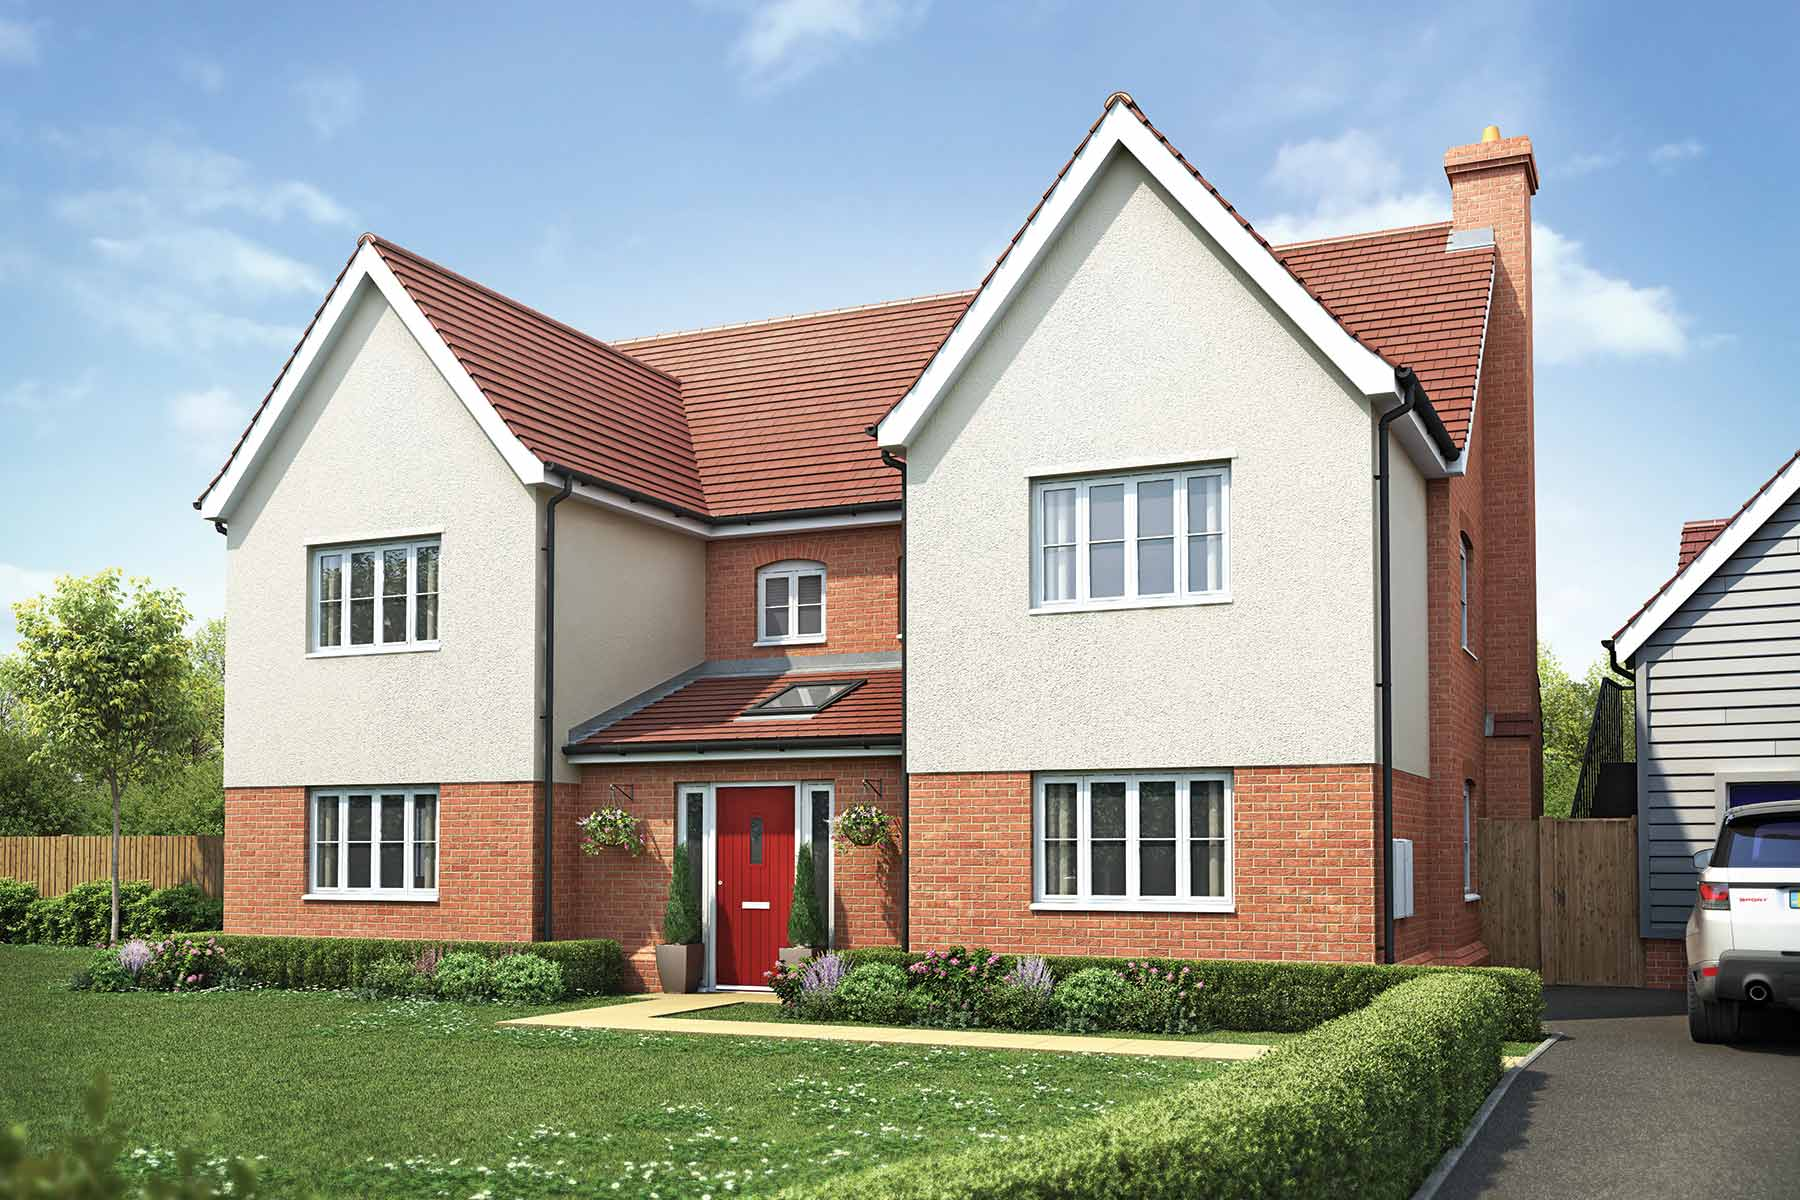 The Barker, Taylor Wimpey at Olstead Grange, Felsted, Essex